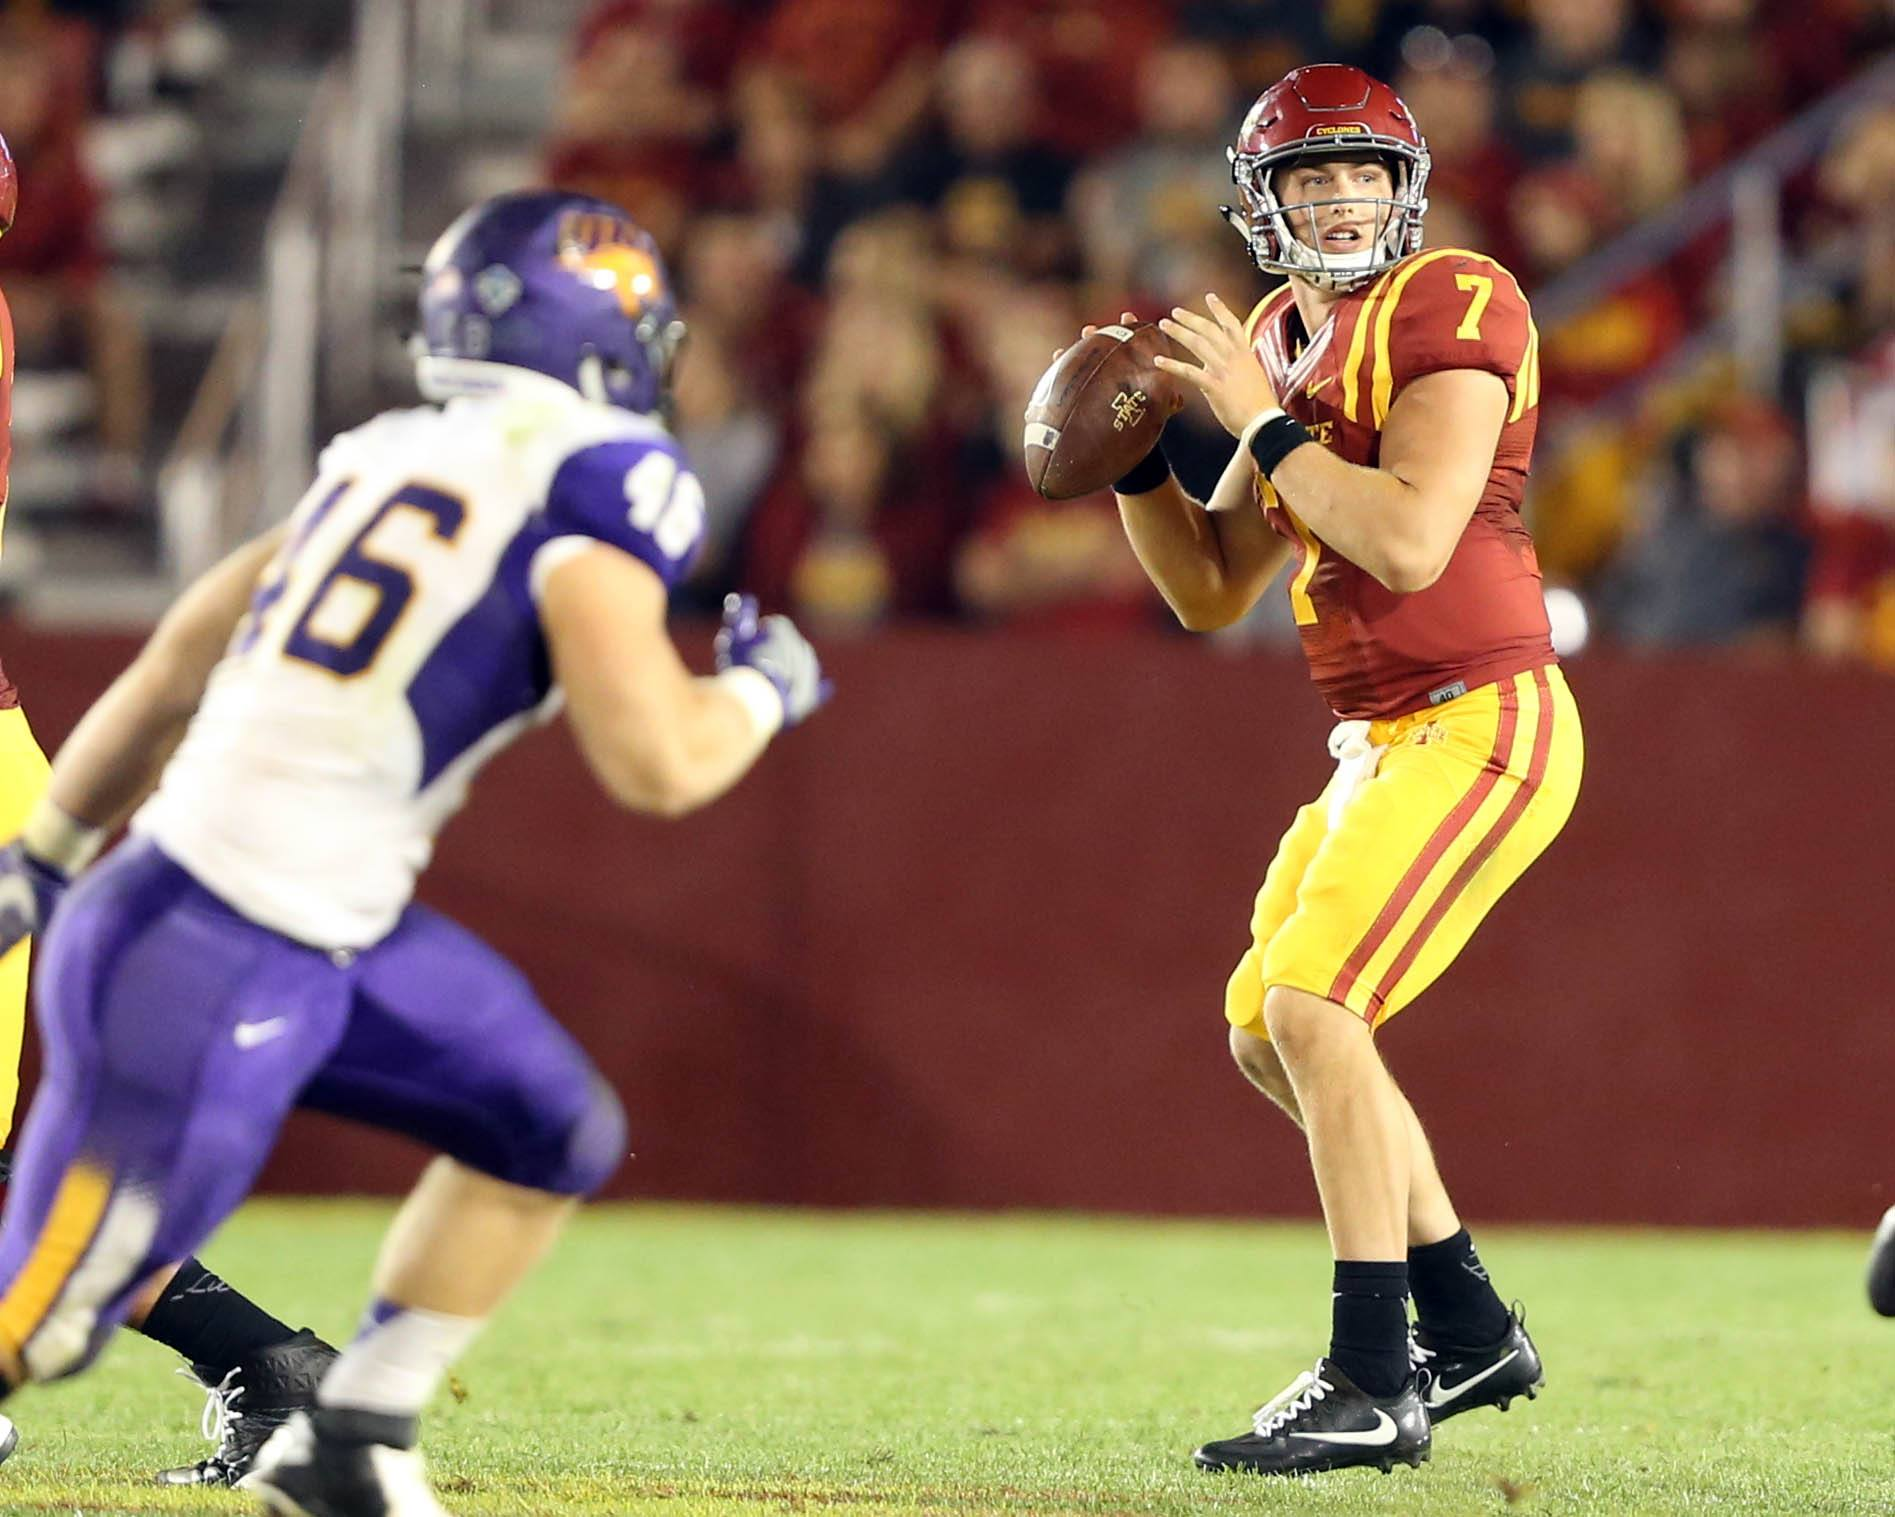 Sep 3, 2016; Ames, IA, USA; Iowa State Cyclones quarterback Joel Lanning (7) looks to pass against the Northern Iowa Panthers at Jack Trice Stadium. The Panthers beat the Cyclones 25-20. Mandatory Credit: Reese Strickland-USA TODAY Sports